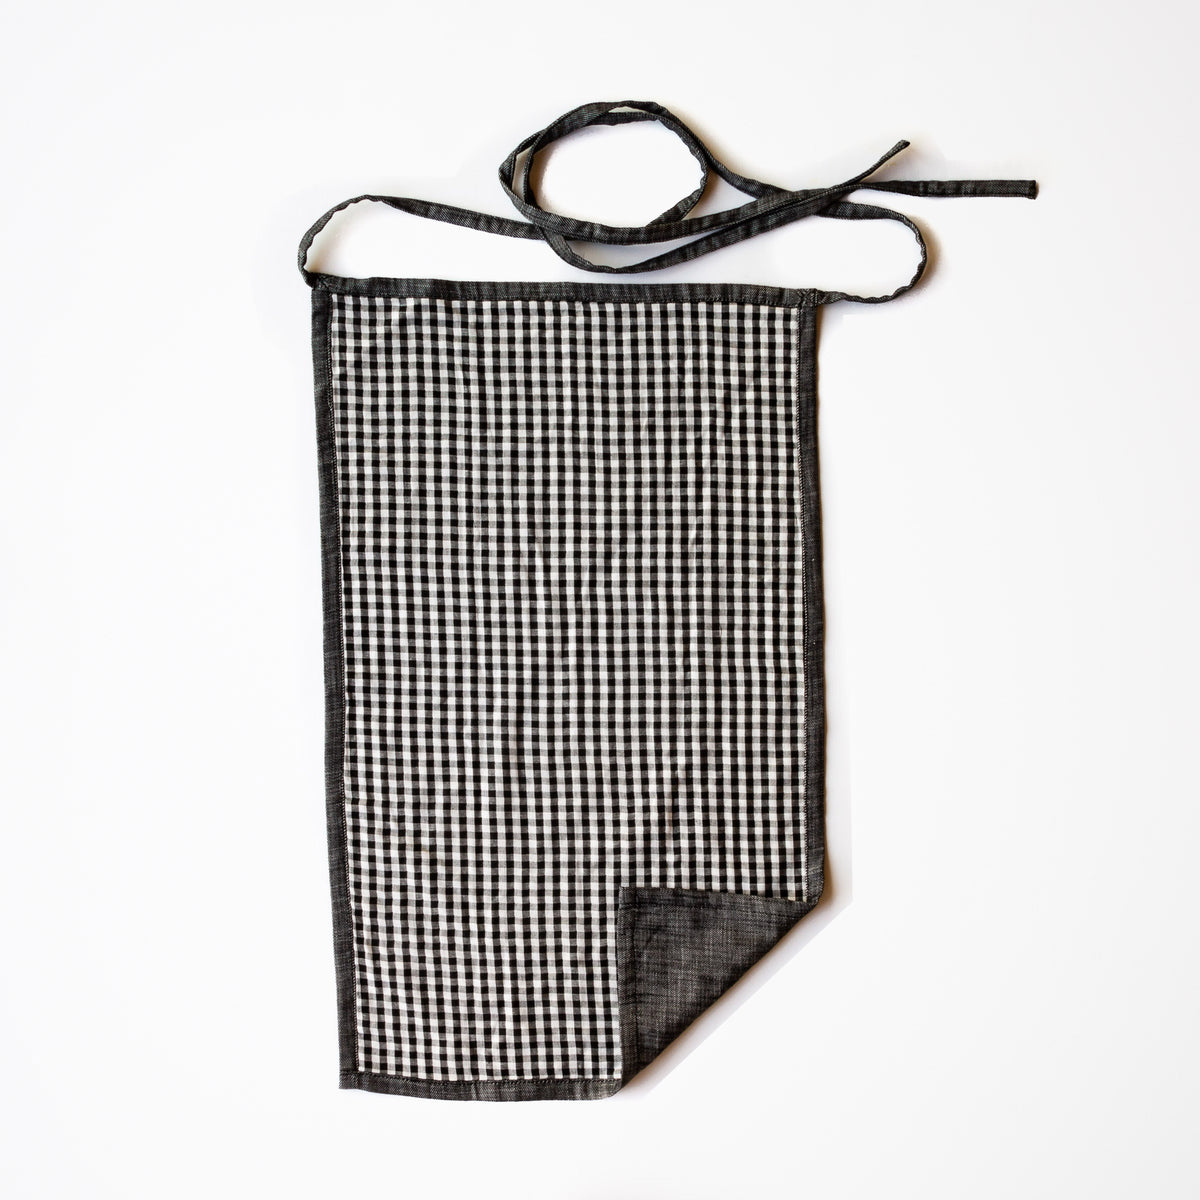 Top View - Reversible Dish Towel Apron - Handmade in 100% Cotton - Sold by Chic & Basta